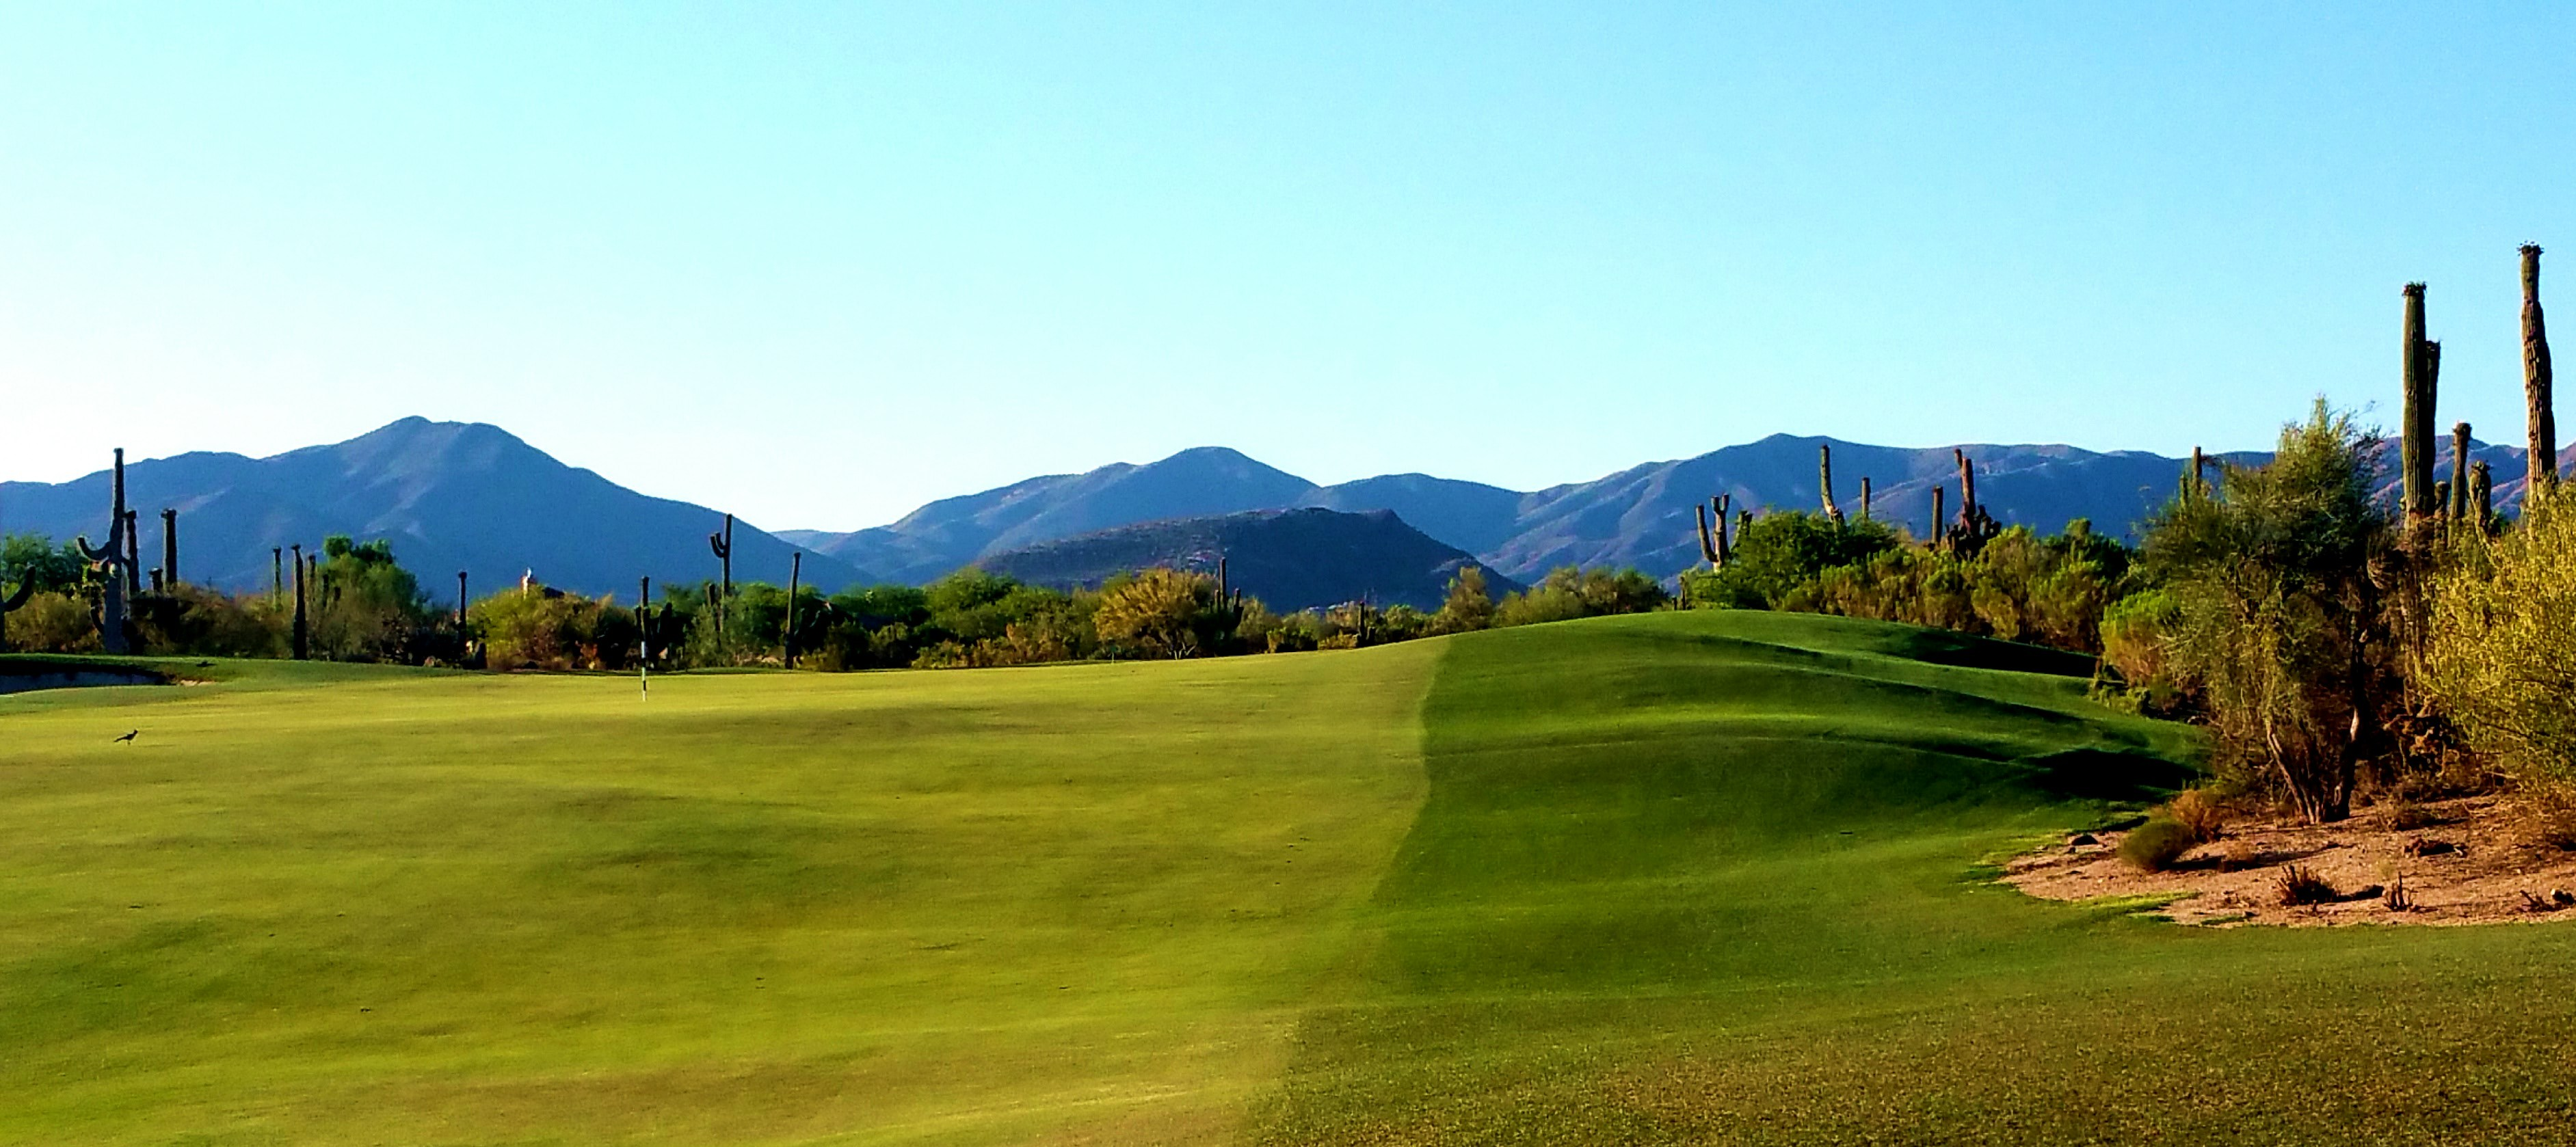 The Green at the Fairways